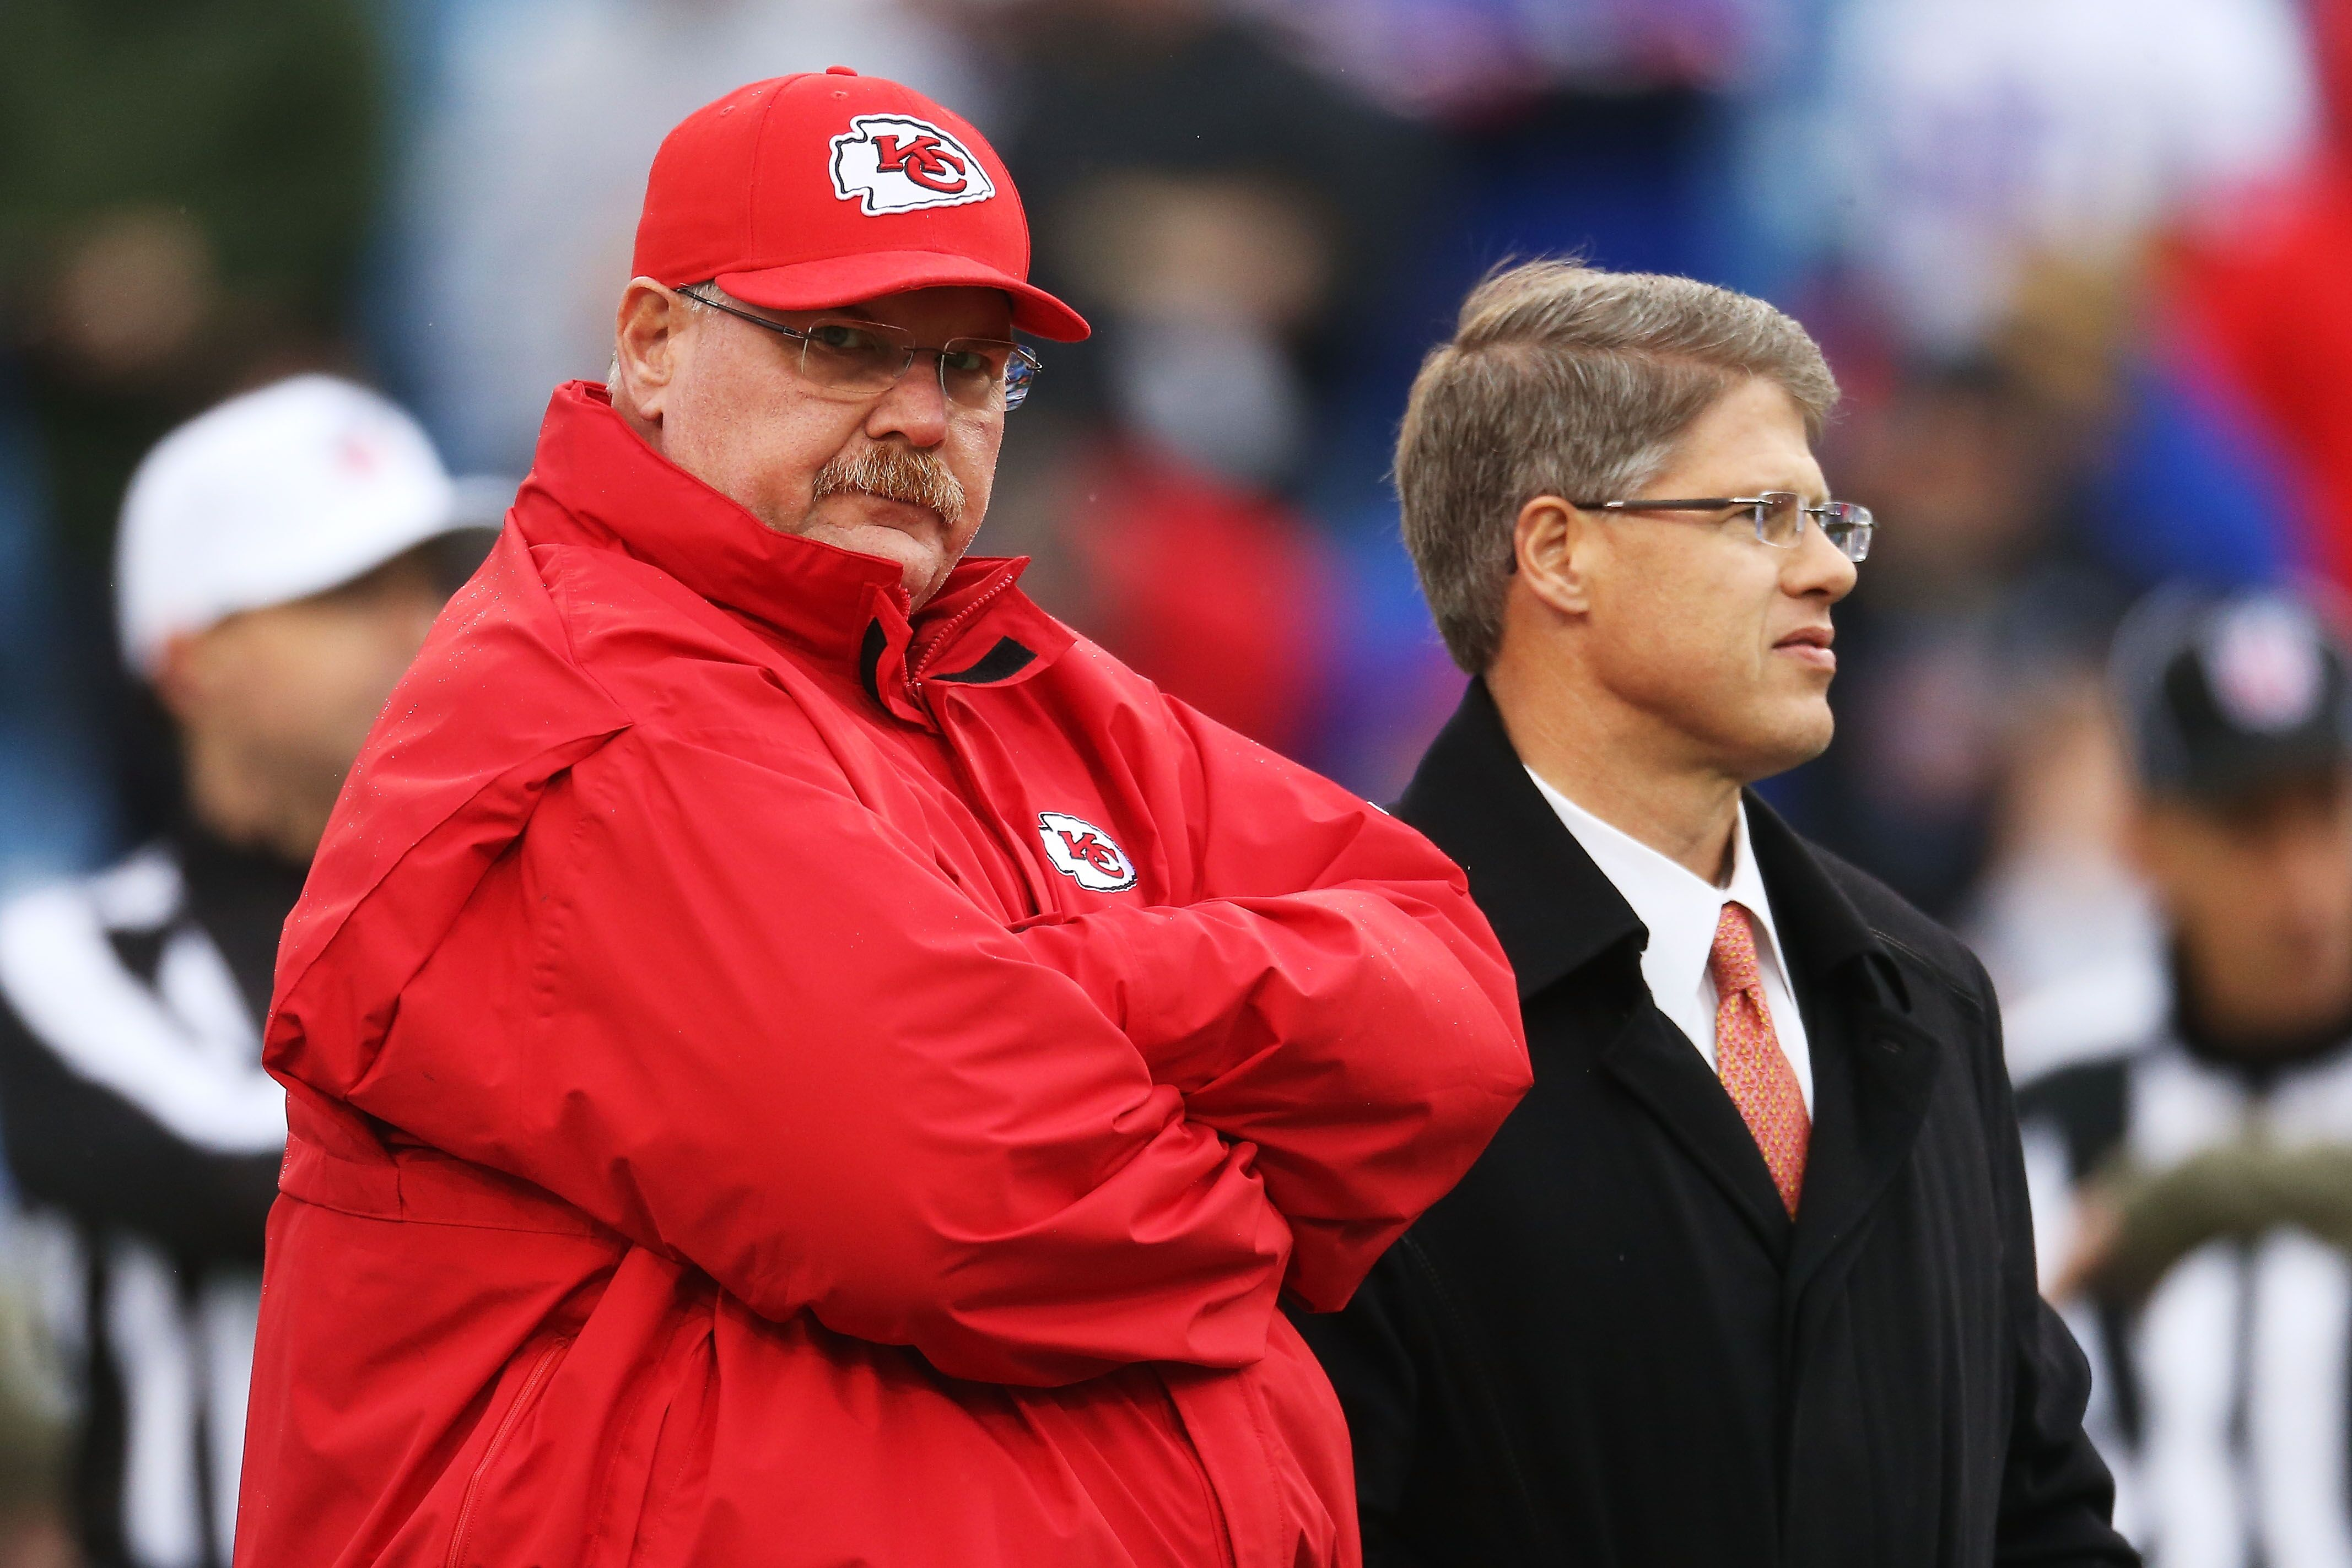 458694452-kansas-city-chiefs-v-buffalo-bills.jpg